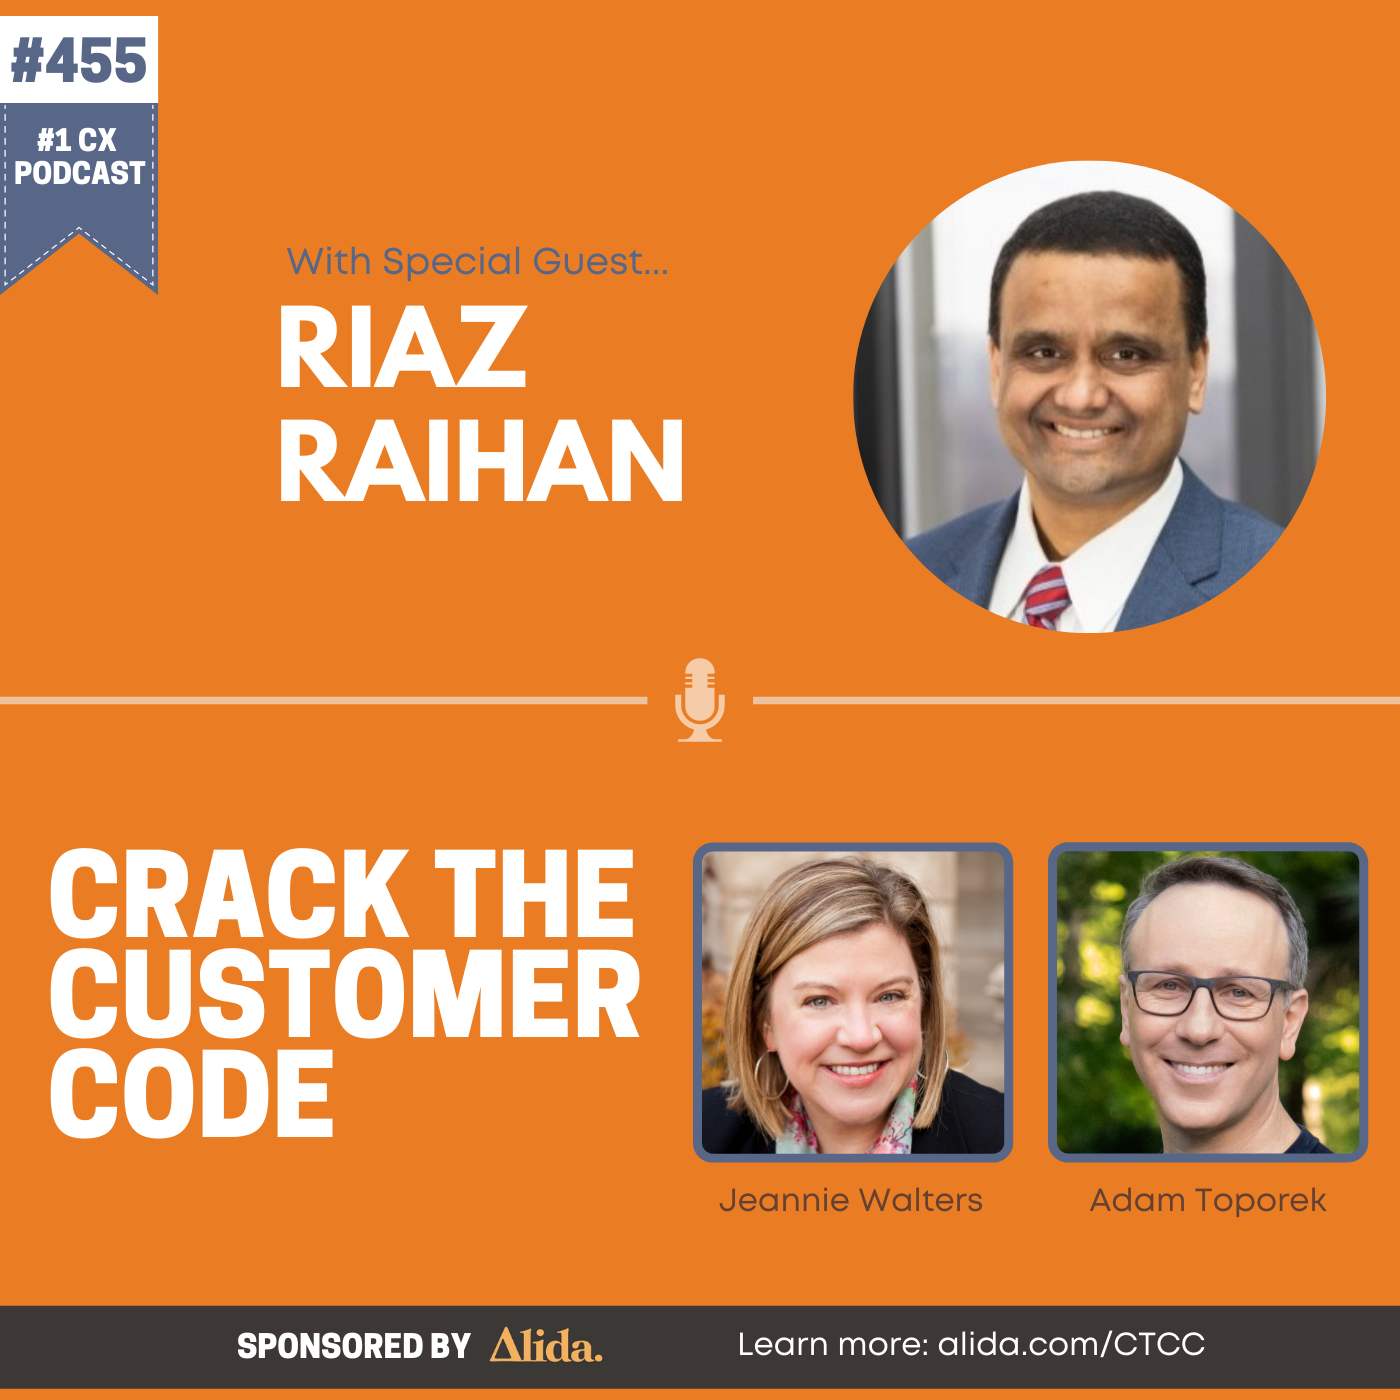 455: Riaz Raihan, Improving CX with AI